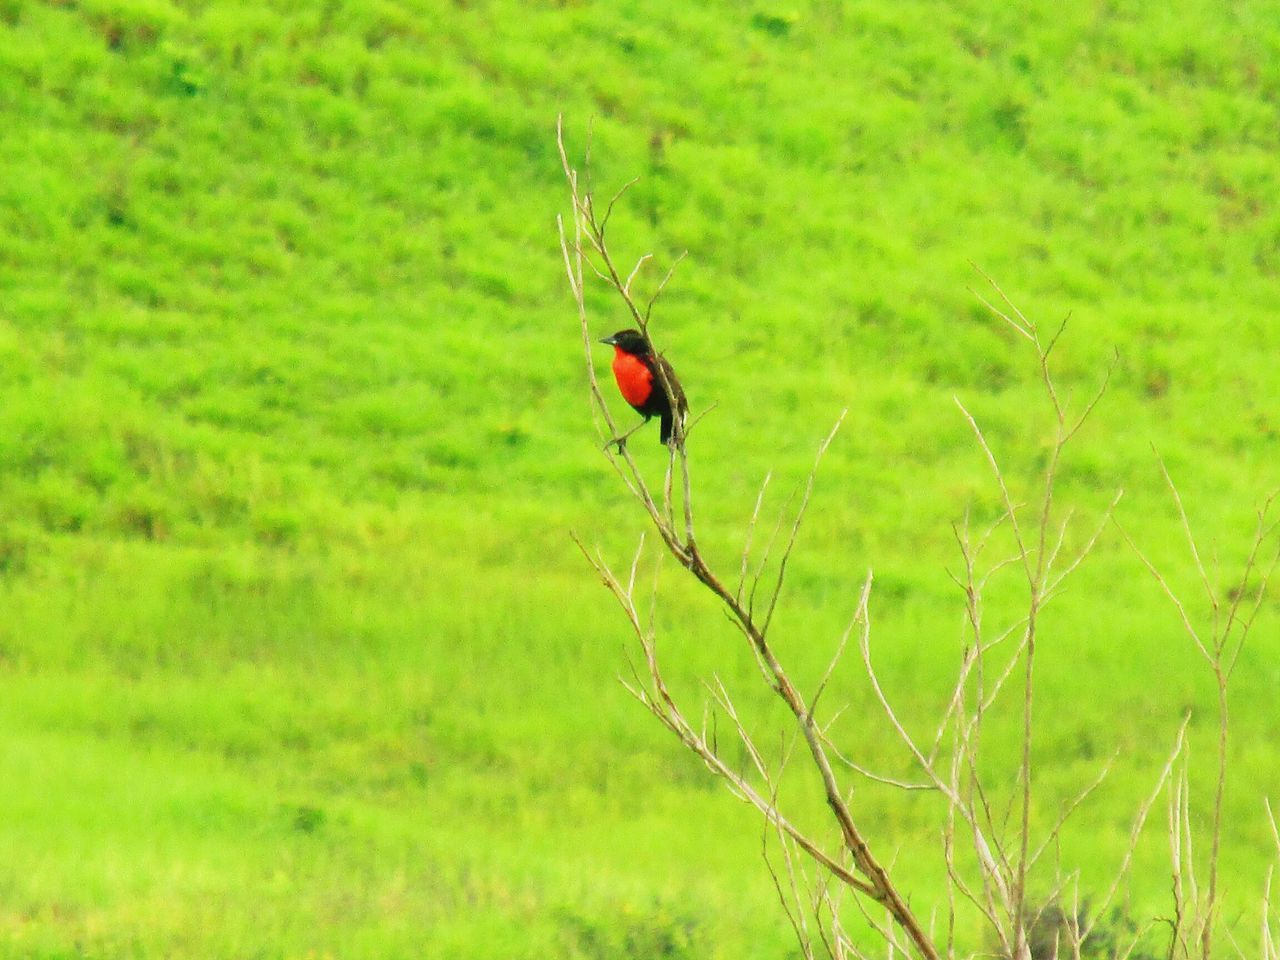 One Animal Animal Themes Animals In The Wild Green Color Nature Grass Outdoors Beauty In Nature Day Bird Photography Birds In The Wild